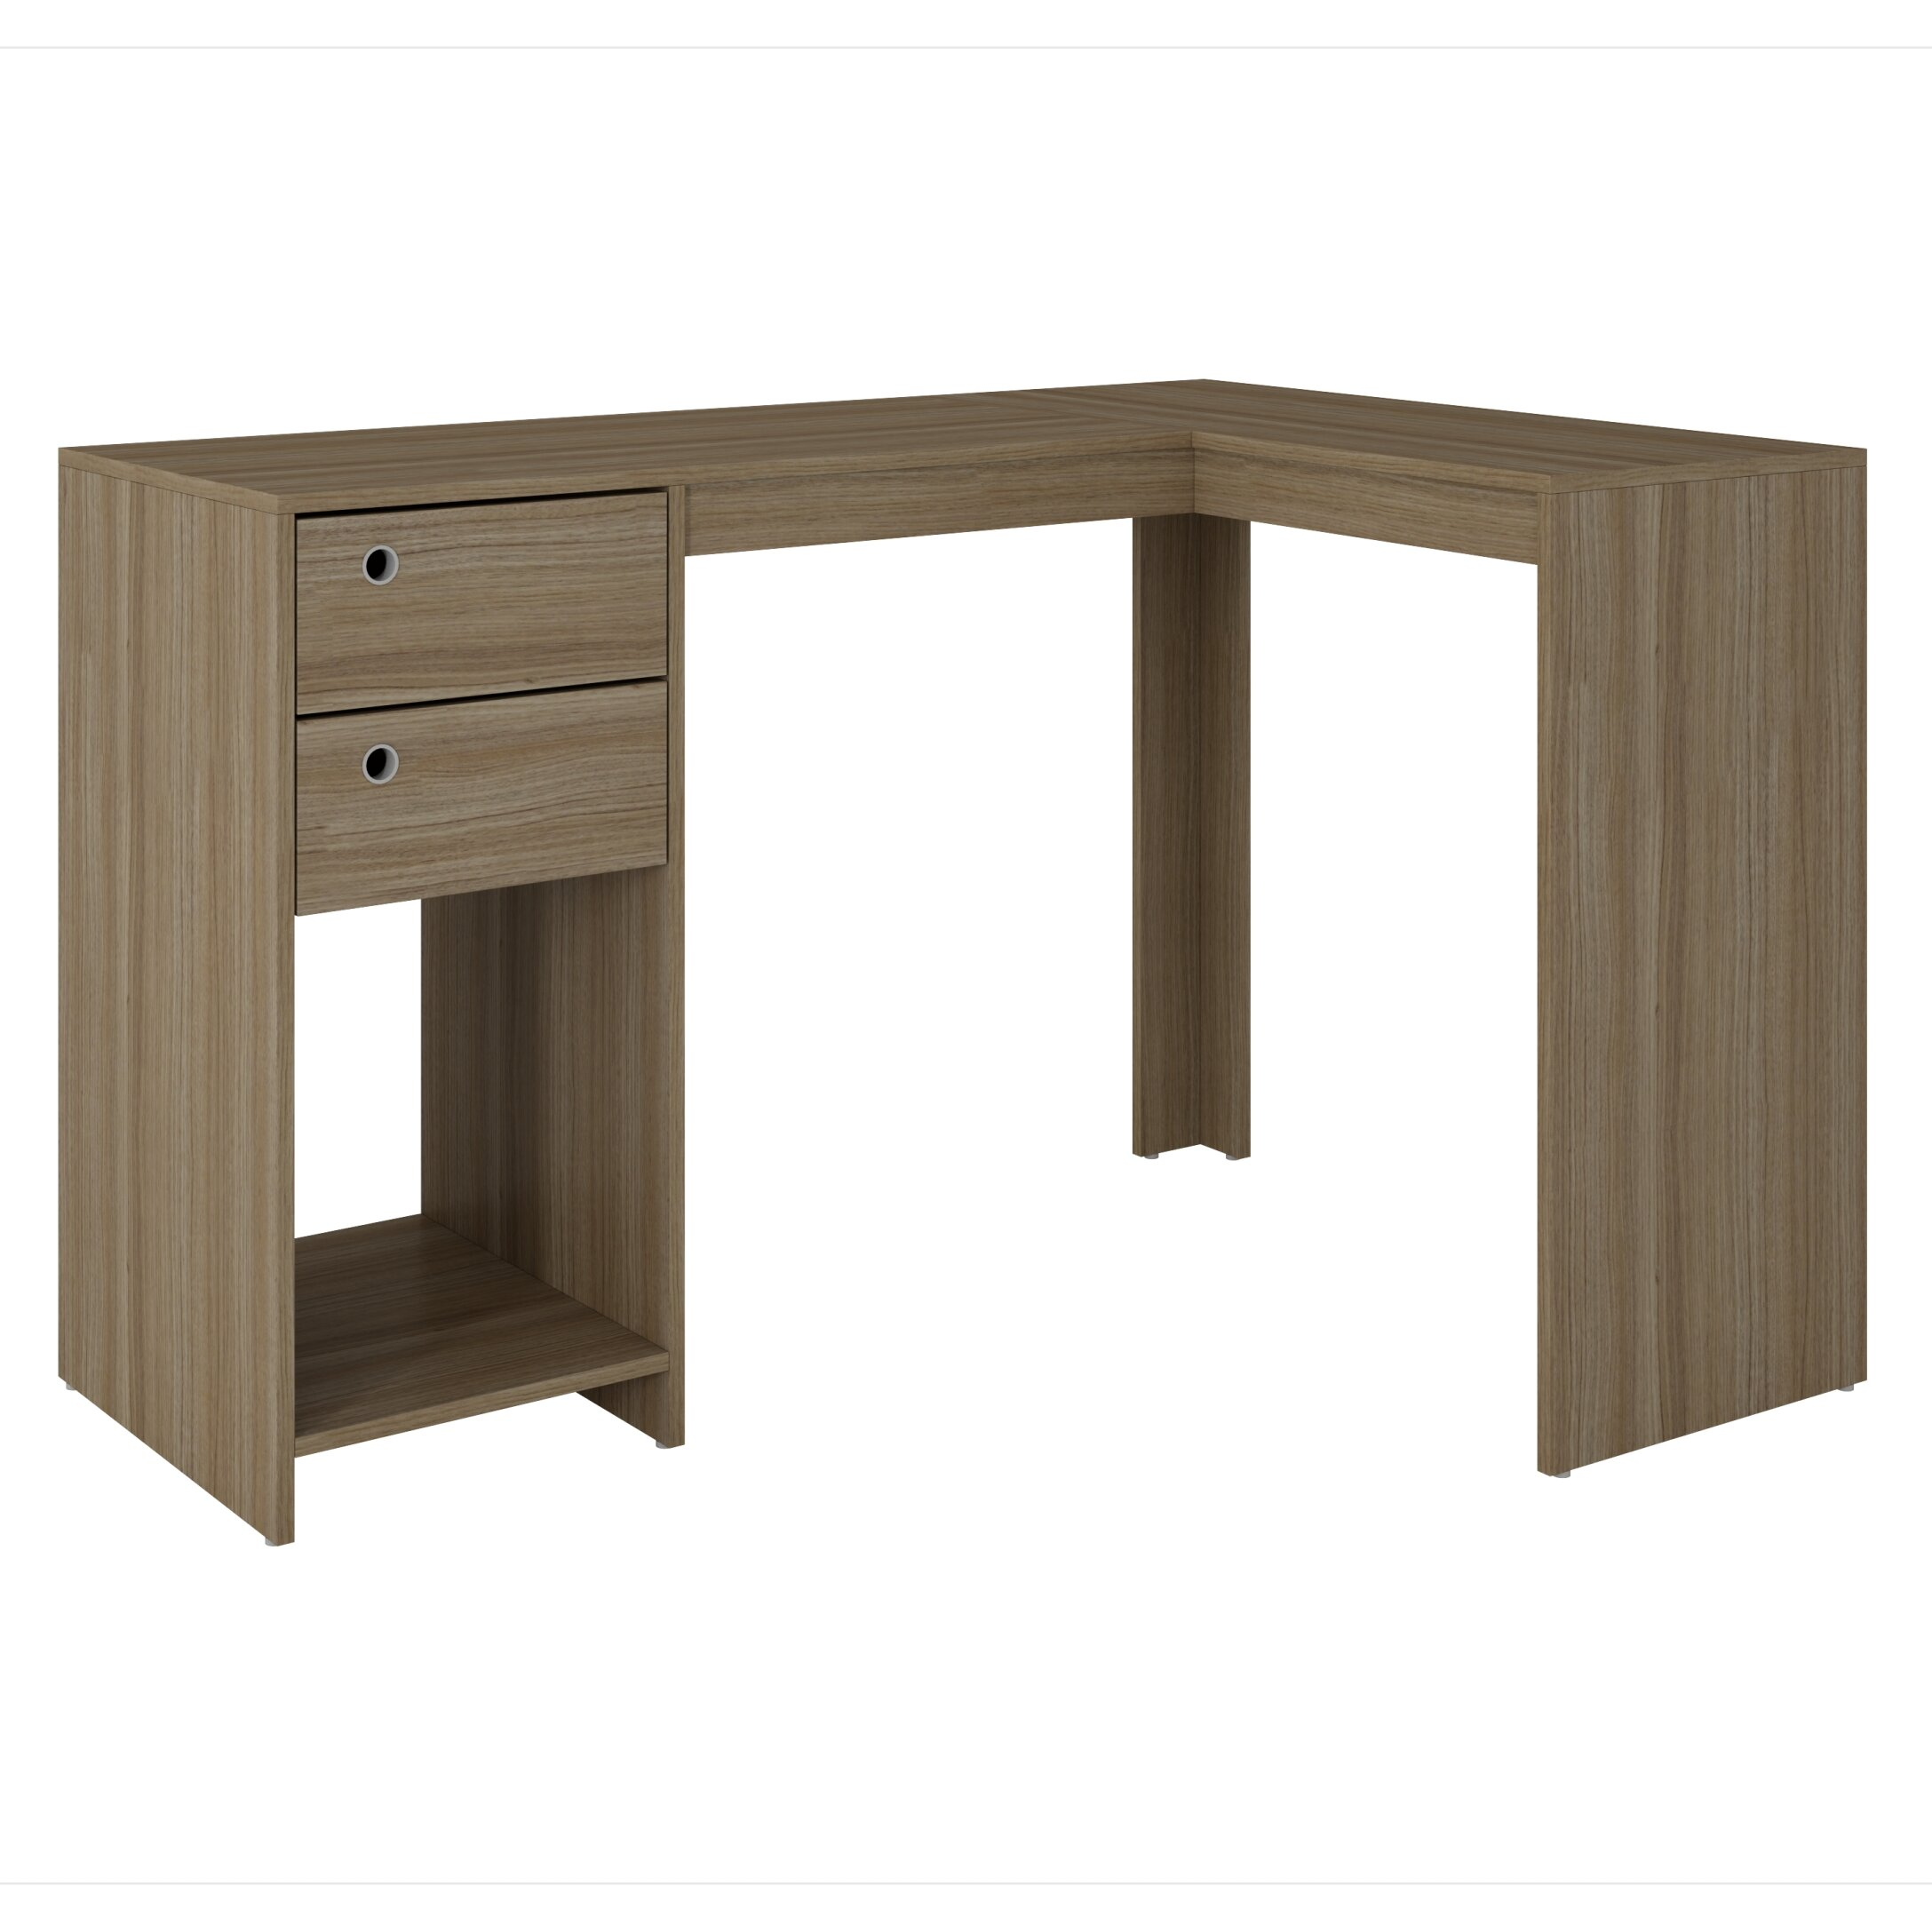 Zipcode Design Erica Classic Quot L Quot Shaped Desk With 2